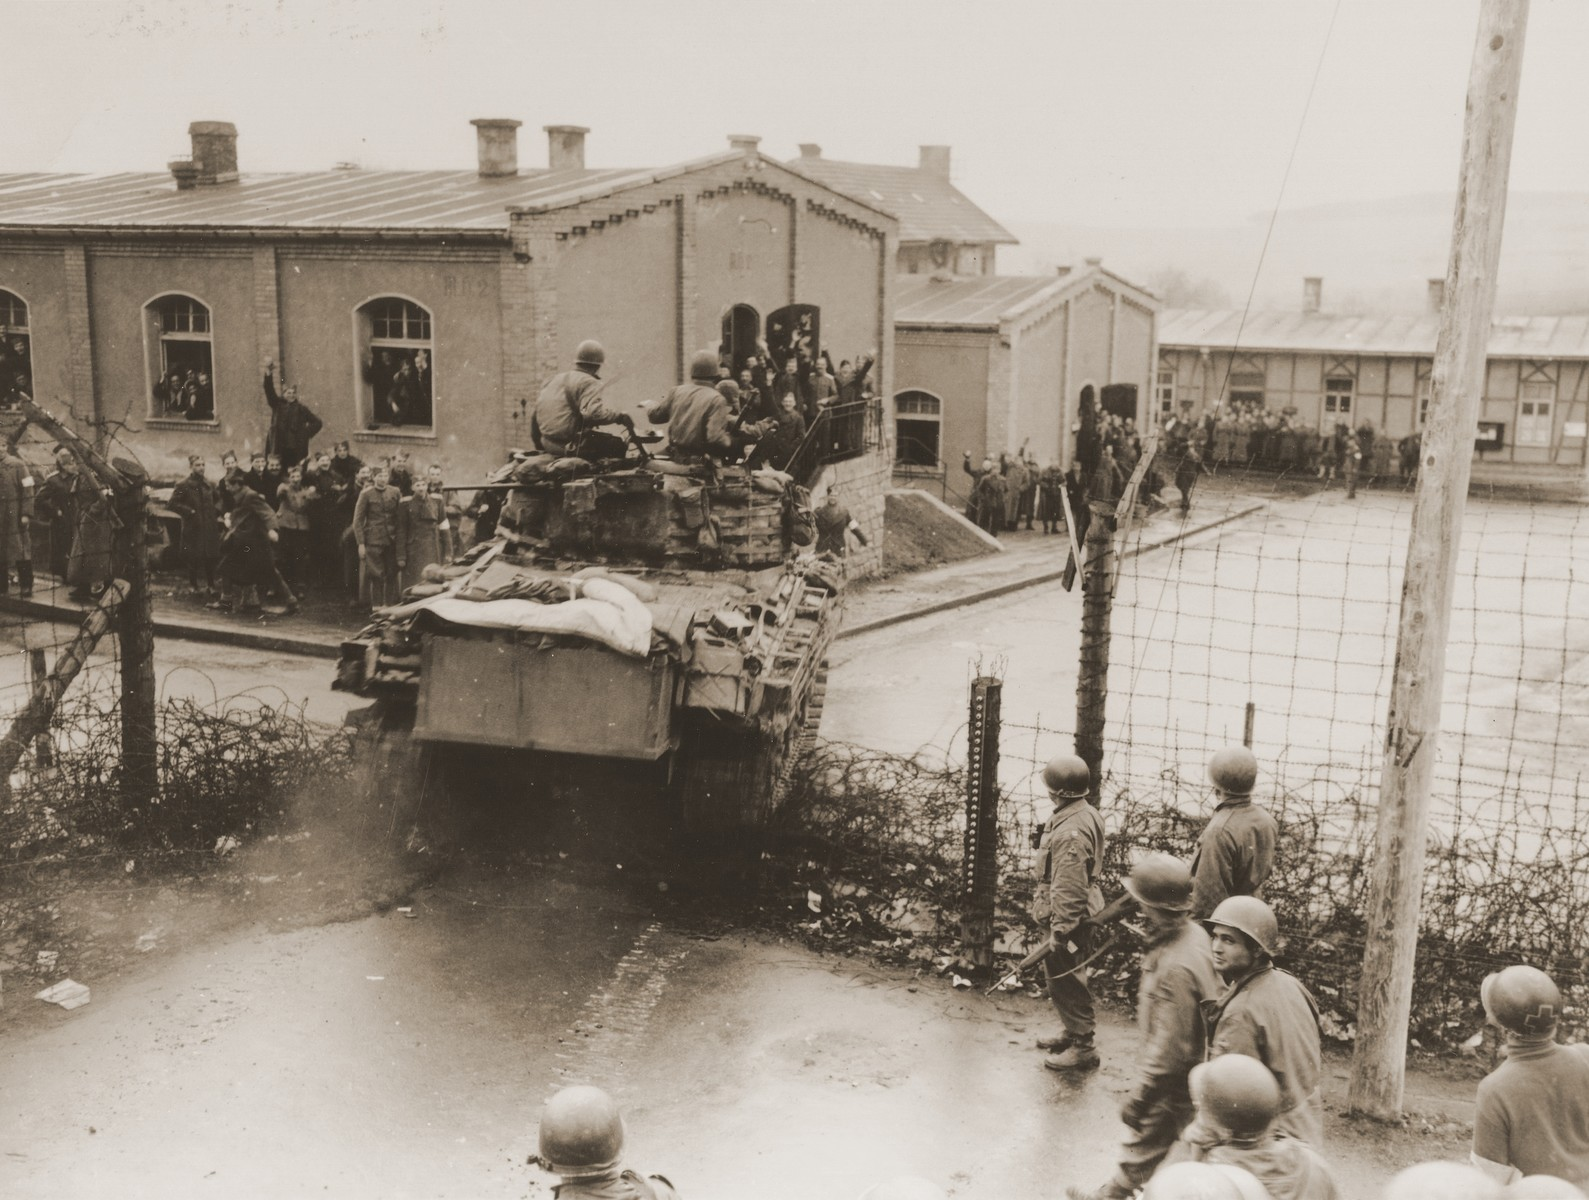 Allied POWs, imprisoned in a camp near Hammelburg, cheer as an American tank crashes through the barbed wire enclosure of the prison camp.